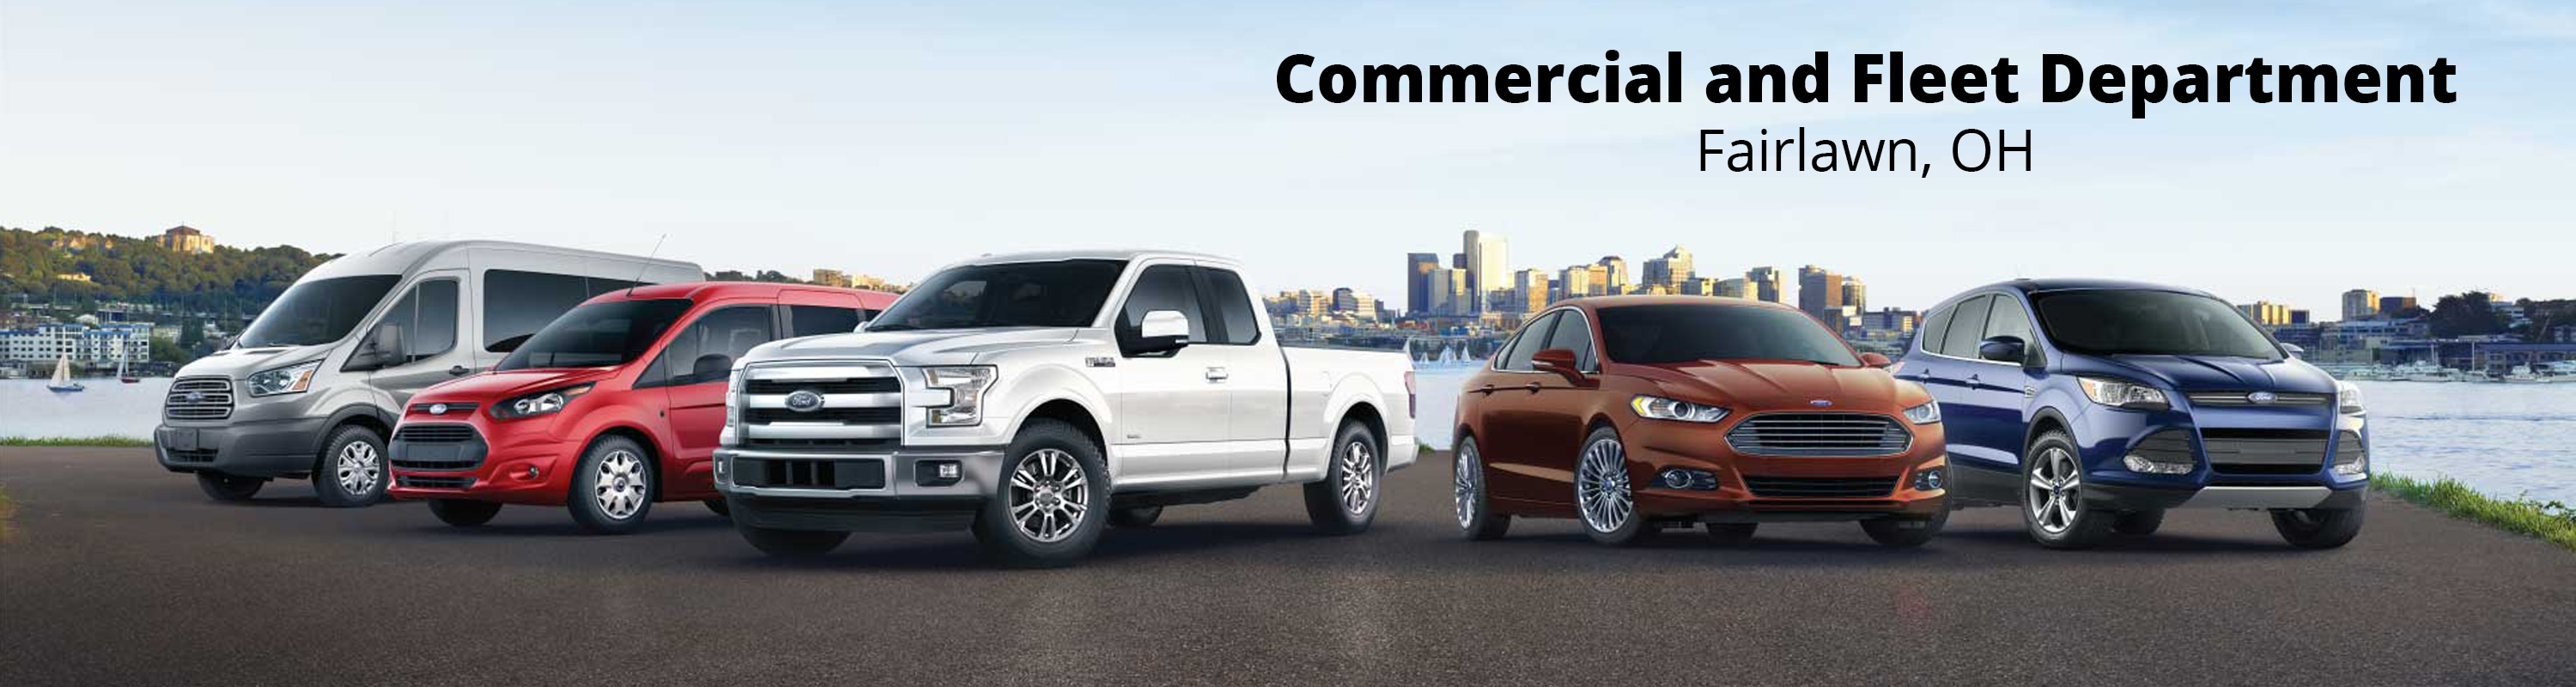 Commercial And Fleet Cars Fairlawn Oh Montrose Ford Of Fairlawn